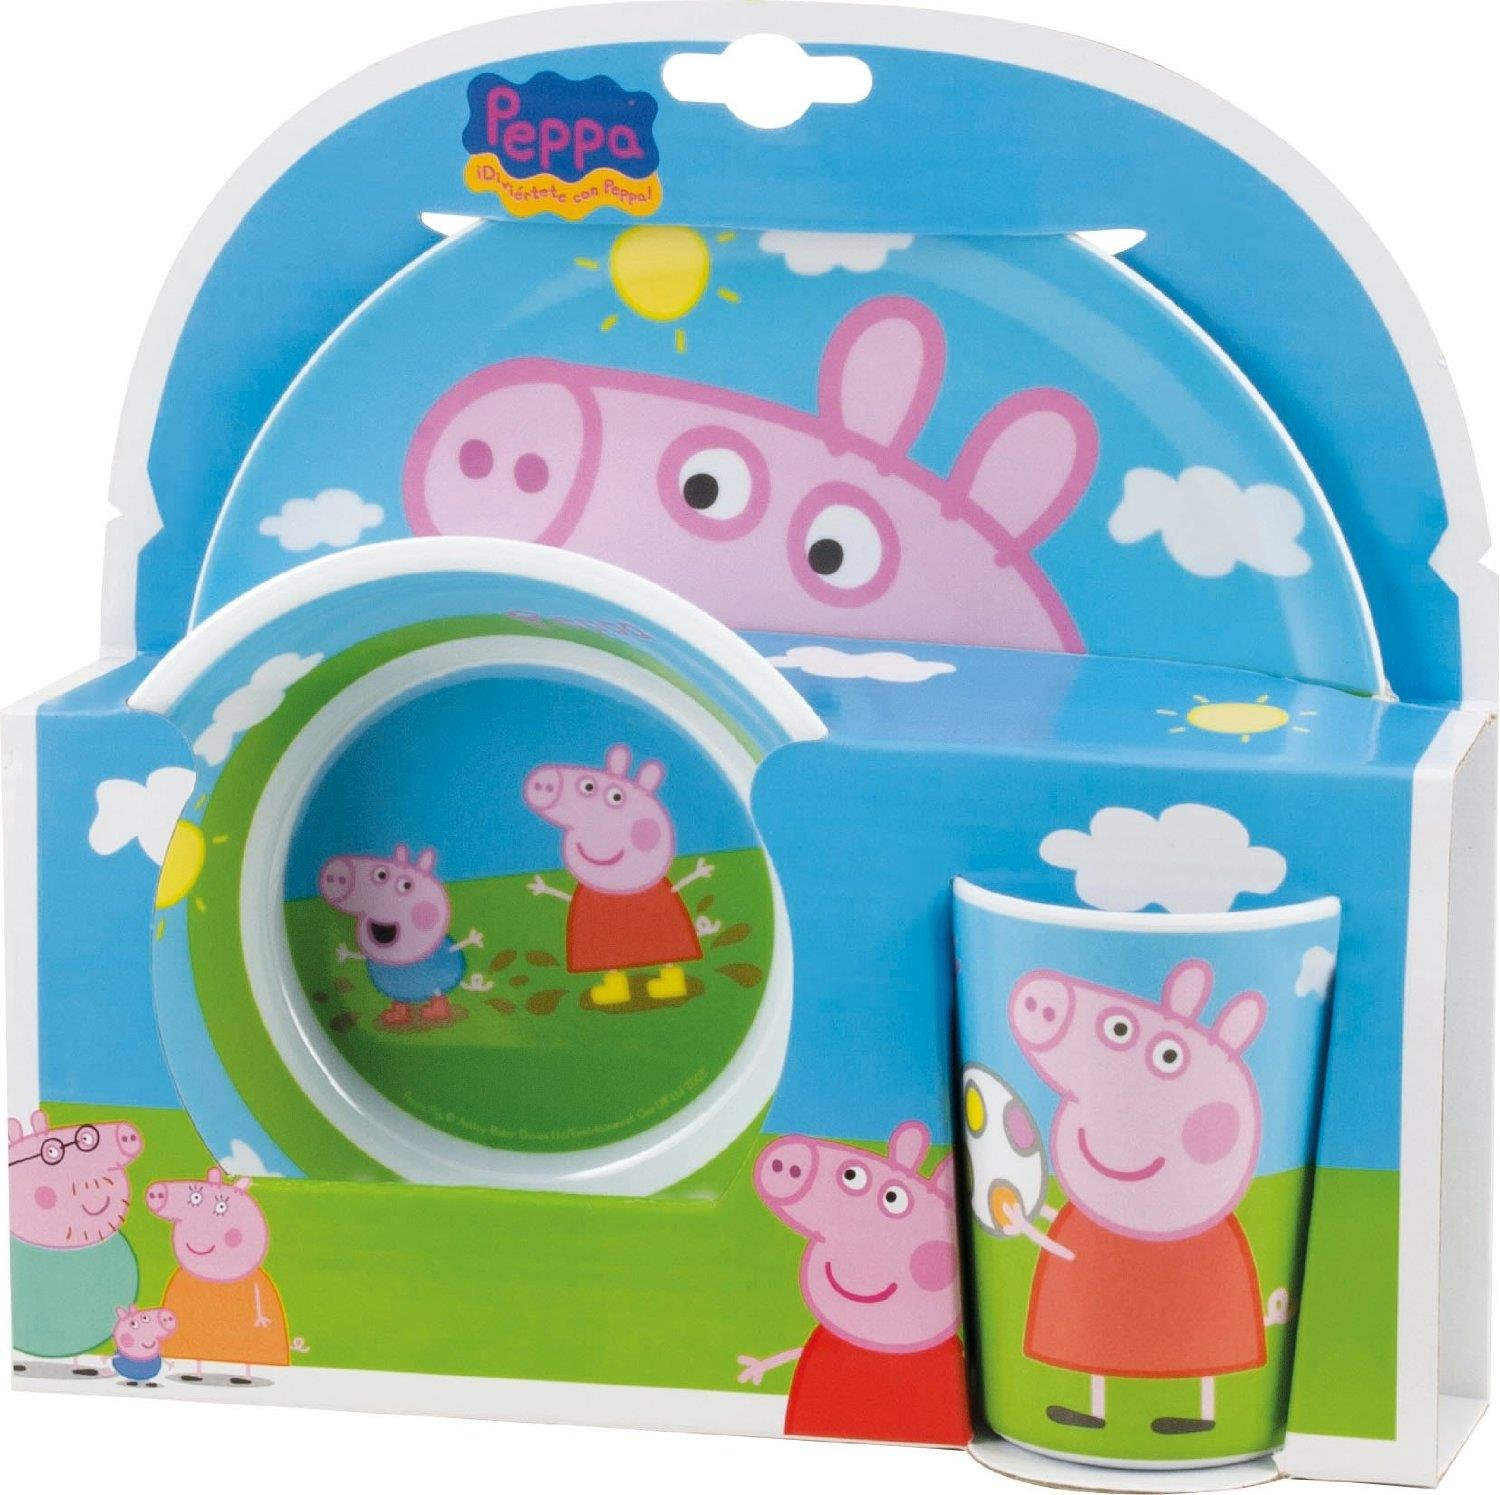 Joy Toy Peppa Pig Melamine Plate, Bowl and Cup Set 748690